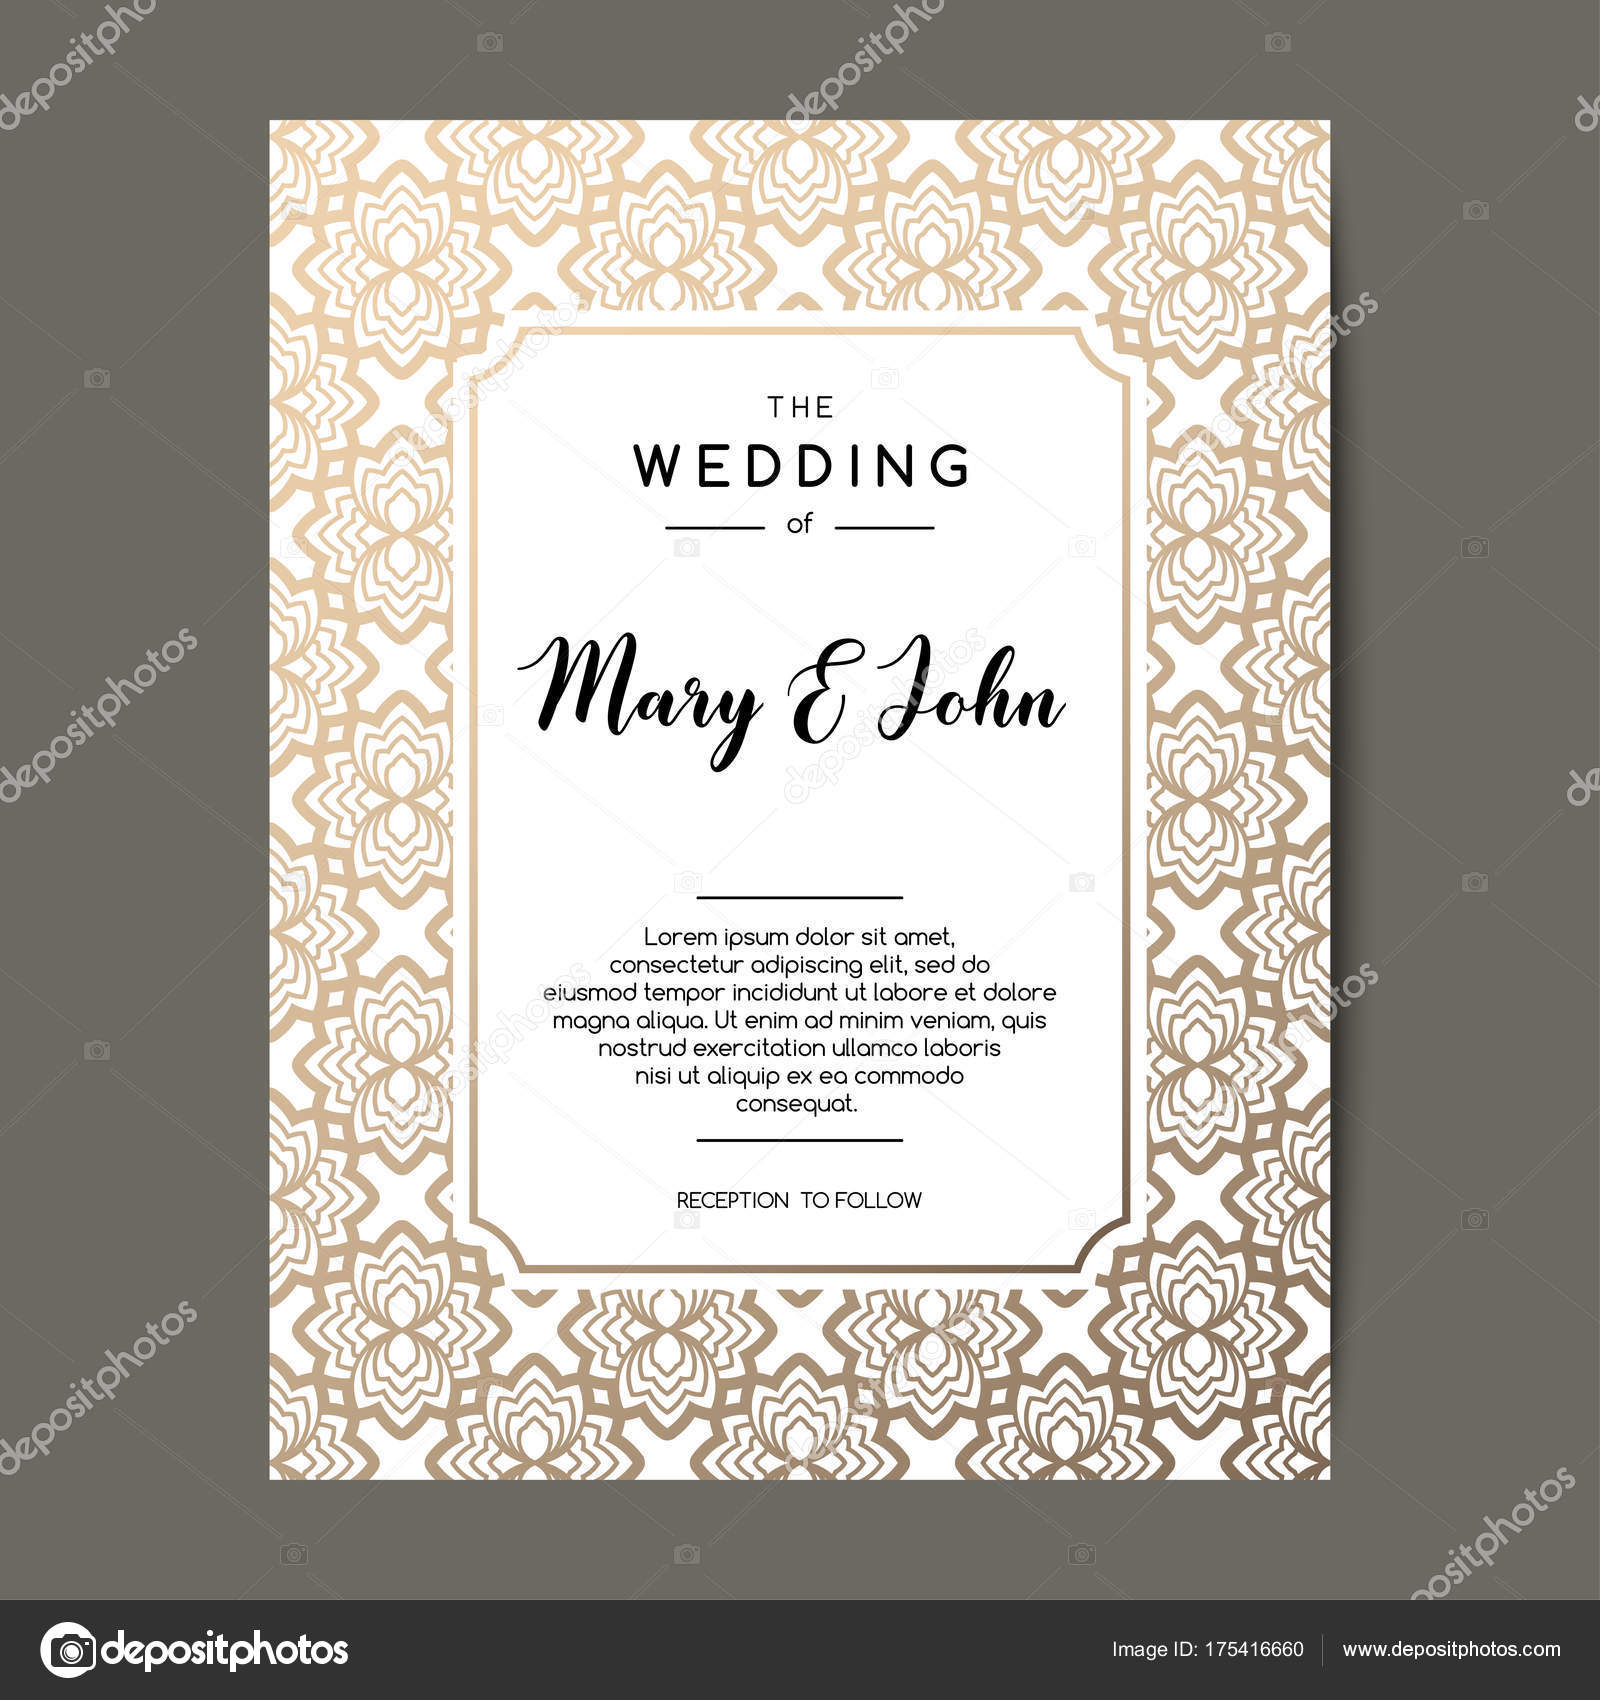 Elegant wedding invitation background. Card design with gold floral ...